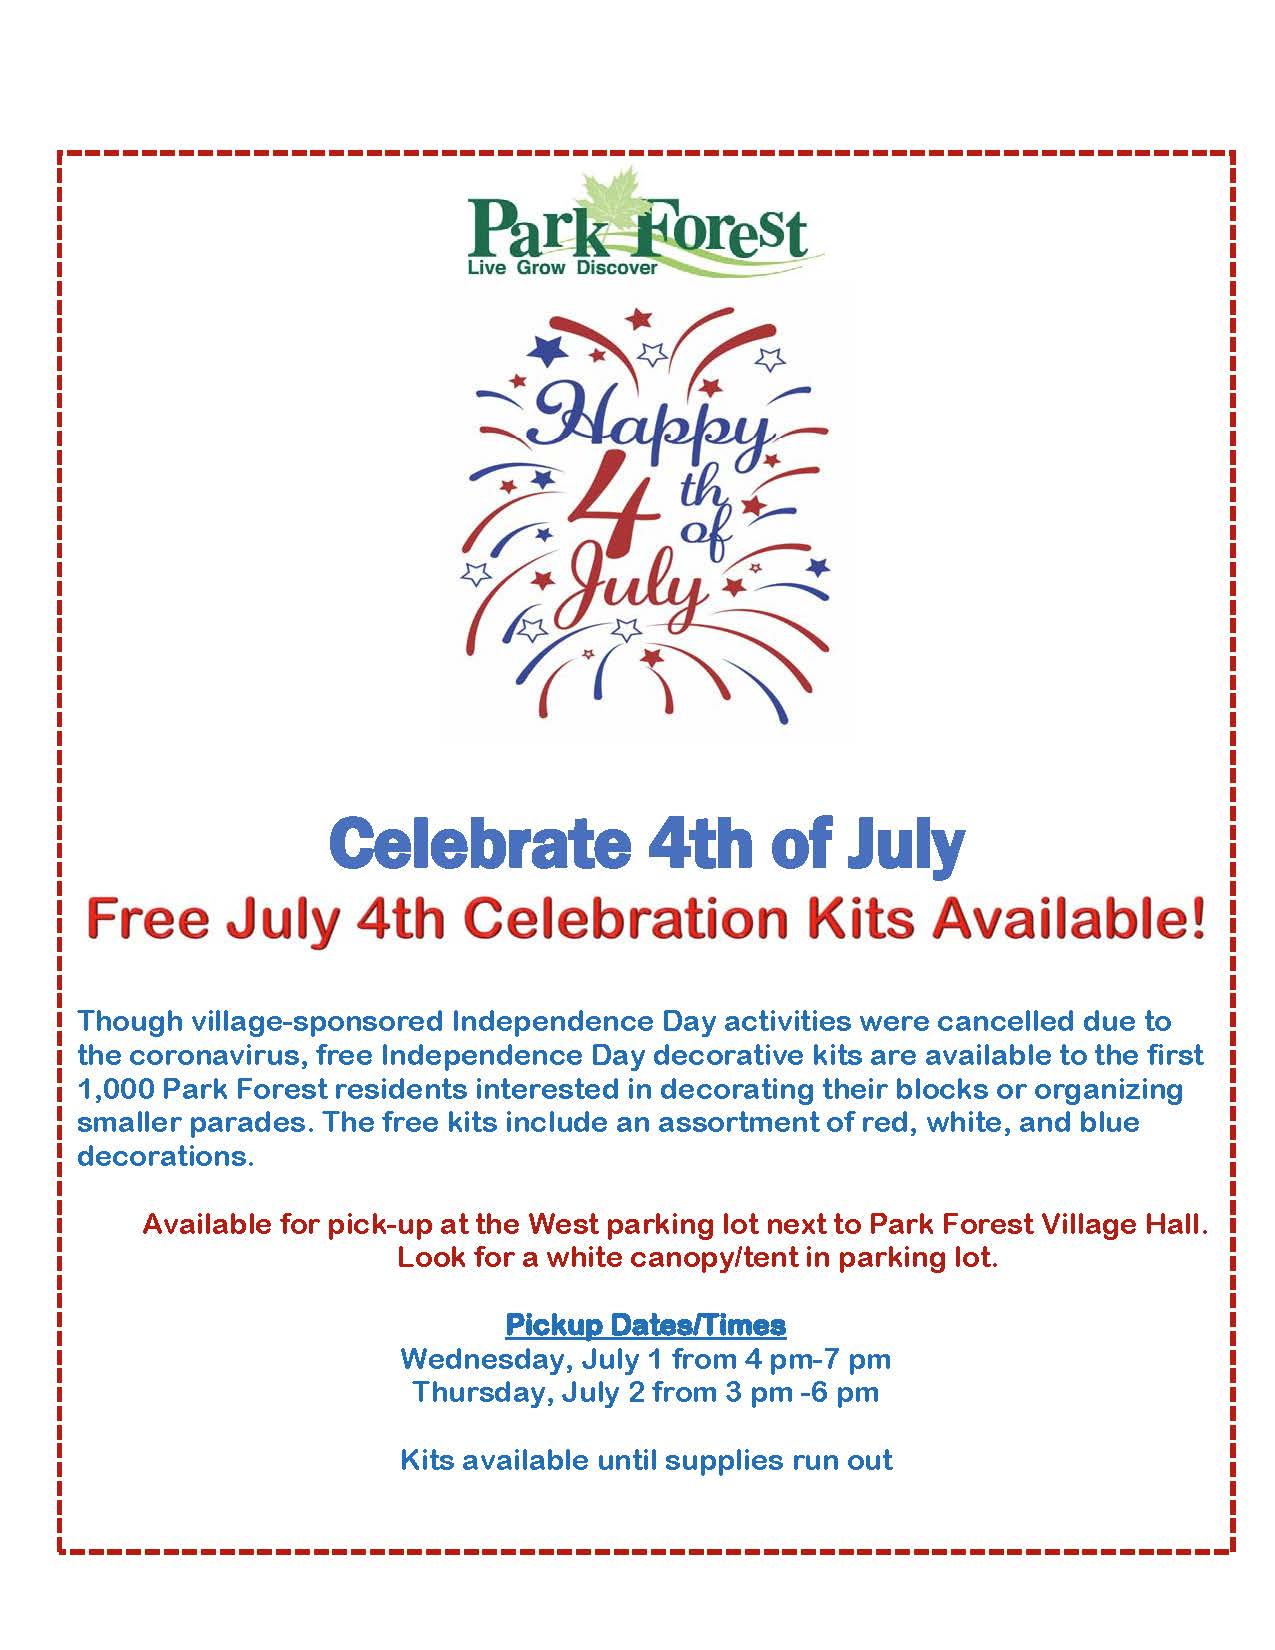 4th of July kits flyer 6_23_20